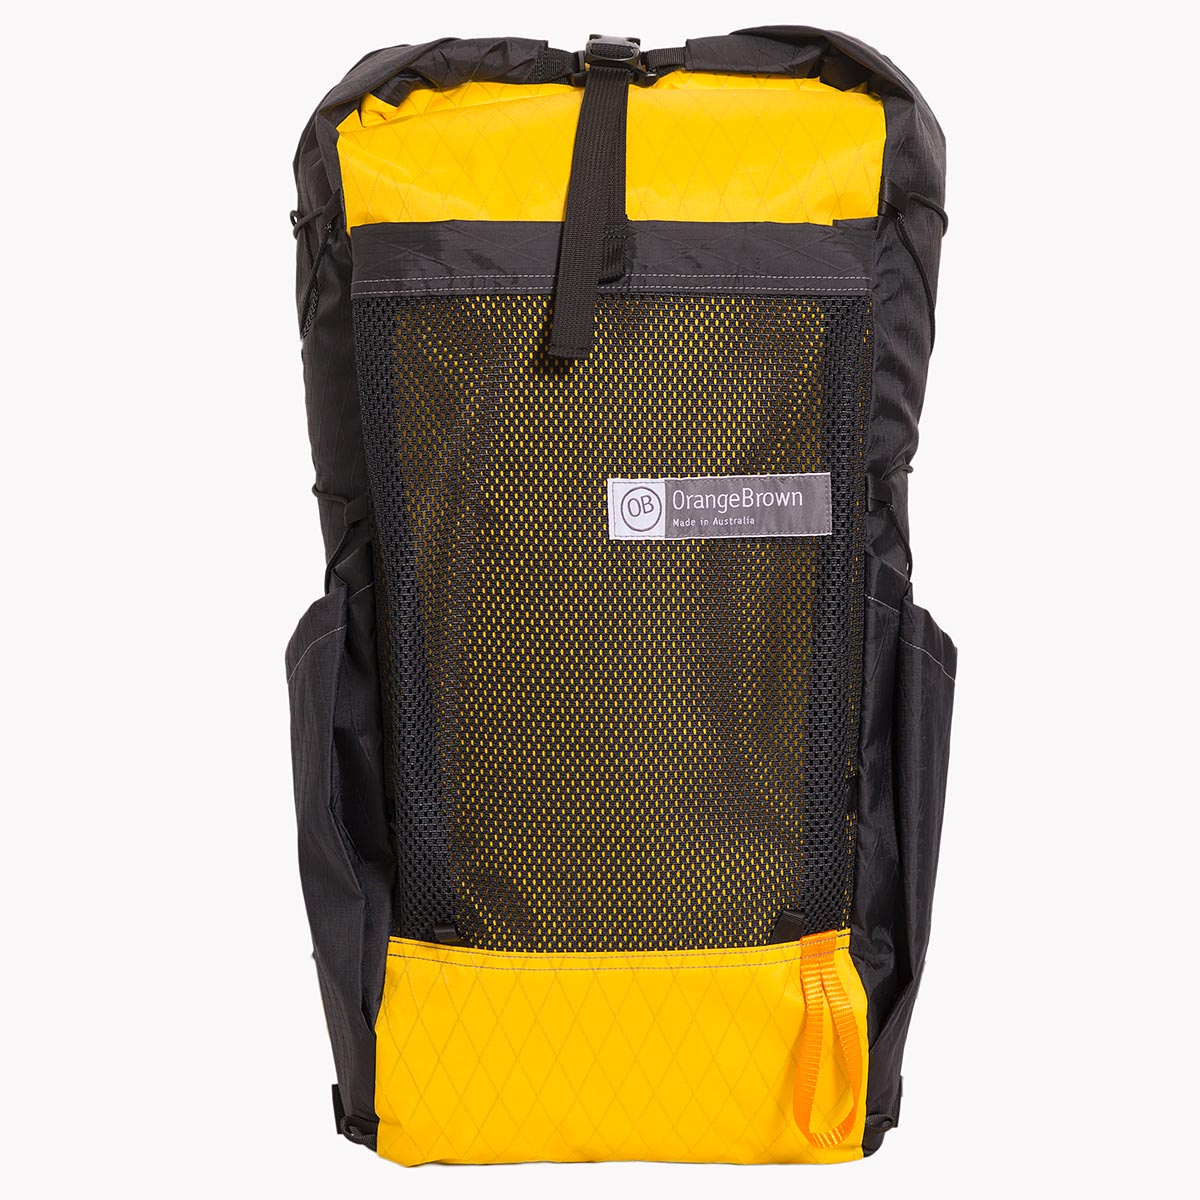 Medium sized backpack in yellow and black X-Pac fabric. The pack has a volume of 36 L including two side pockets and a front mesh pocket. Side compression cord with a Line Loc 3 and an orange webbing loop to fix the trekking poles. Made in Australia.